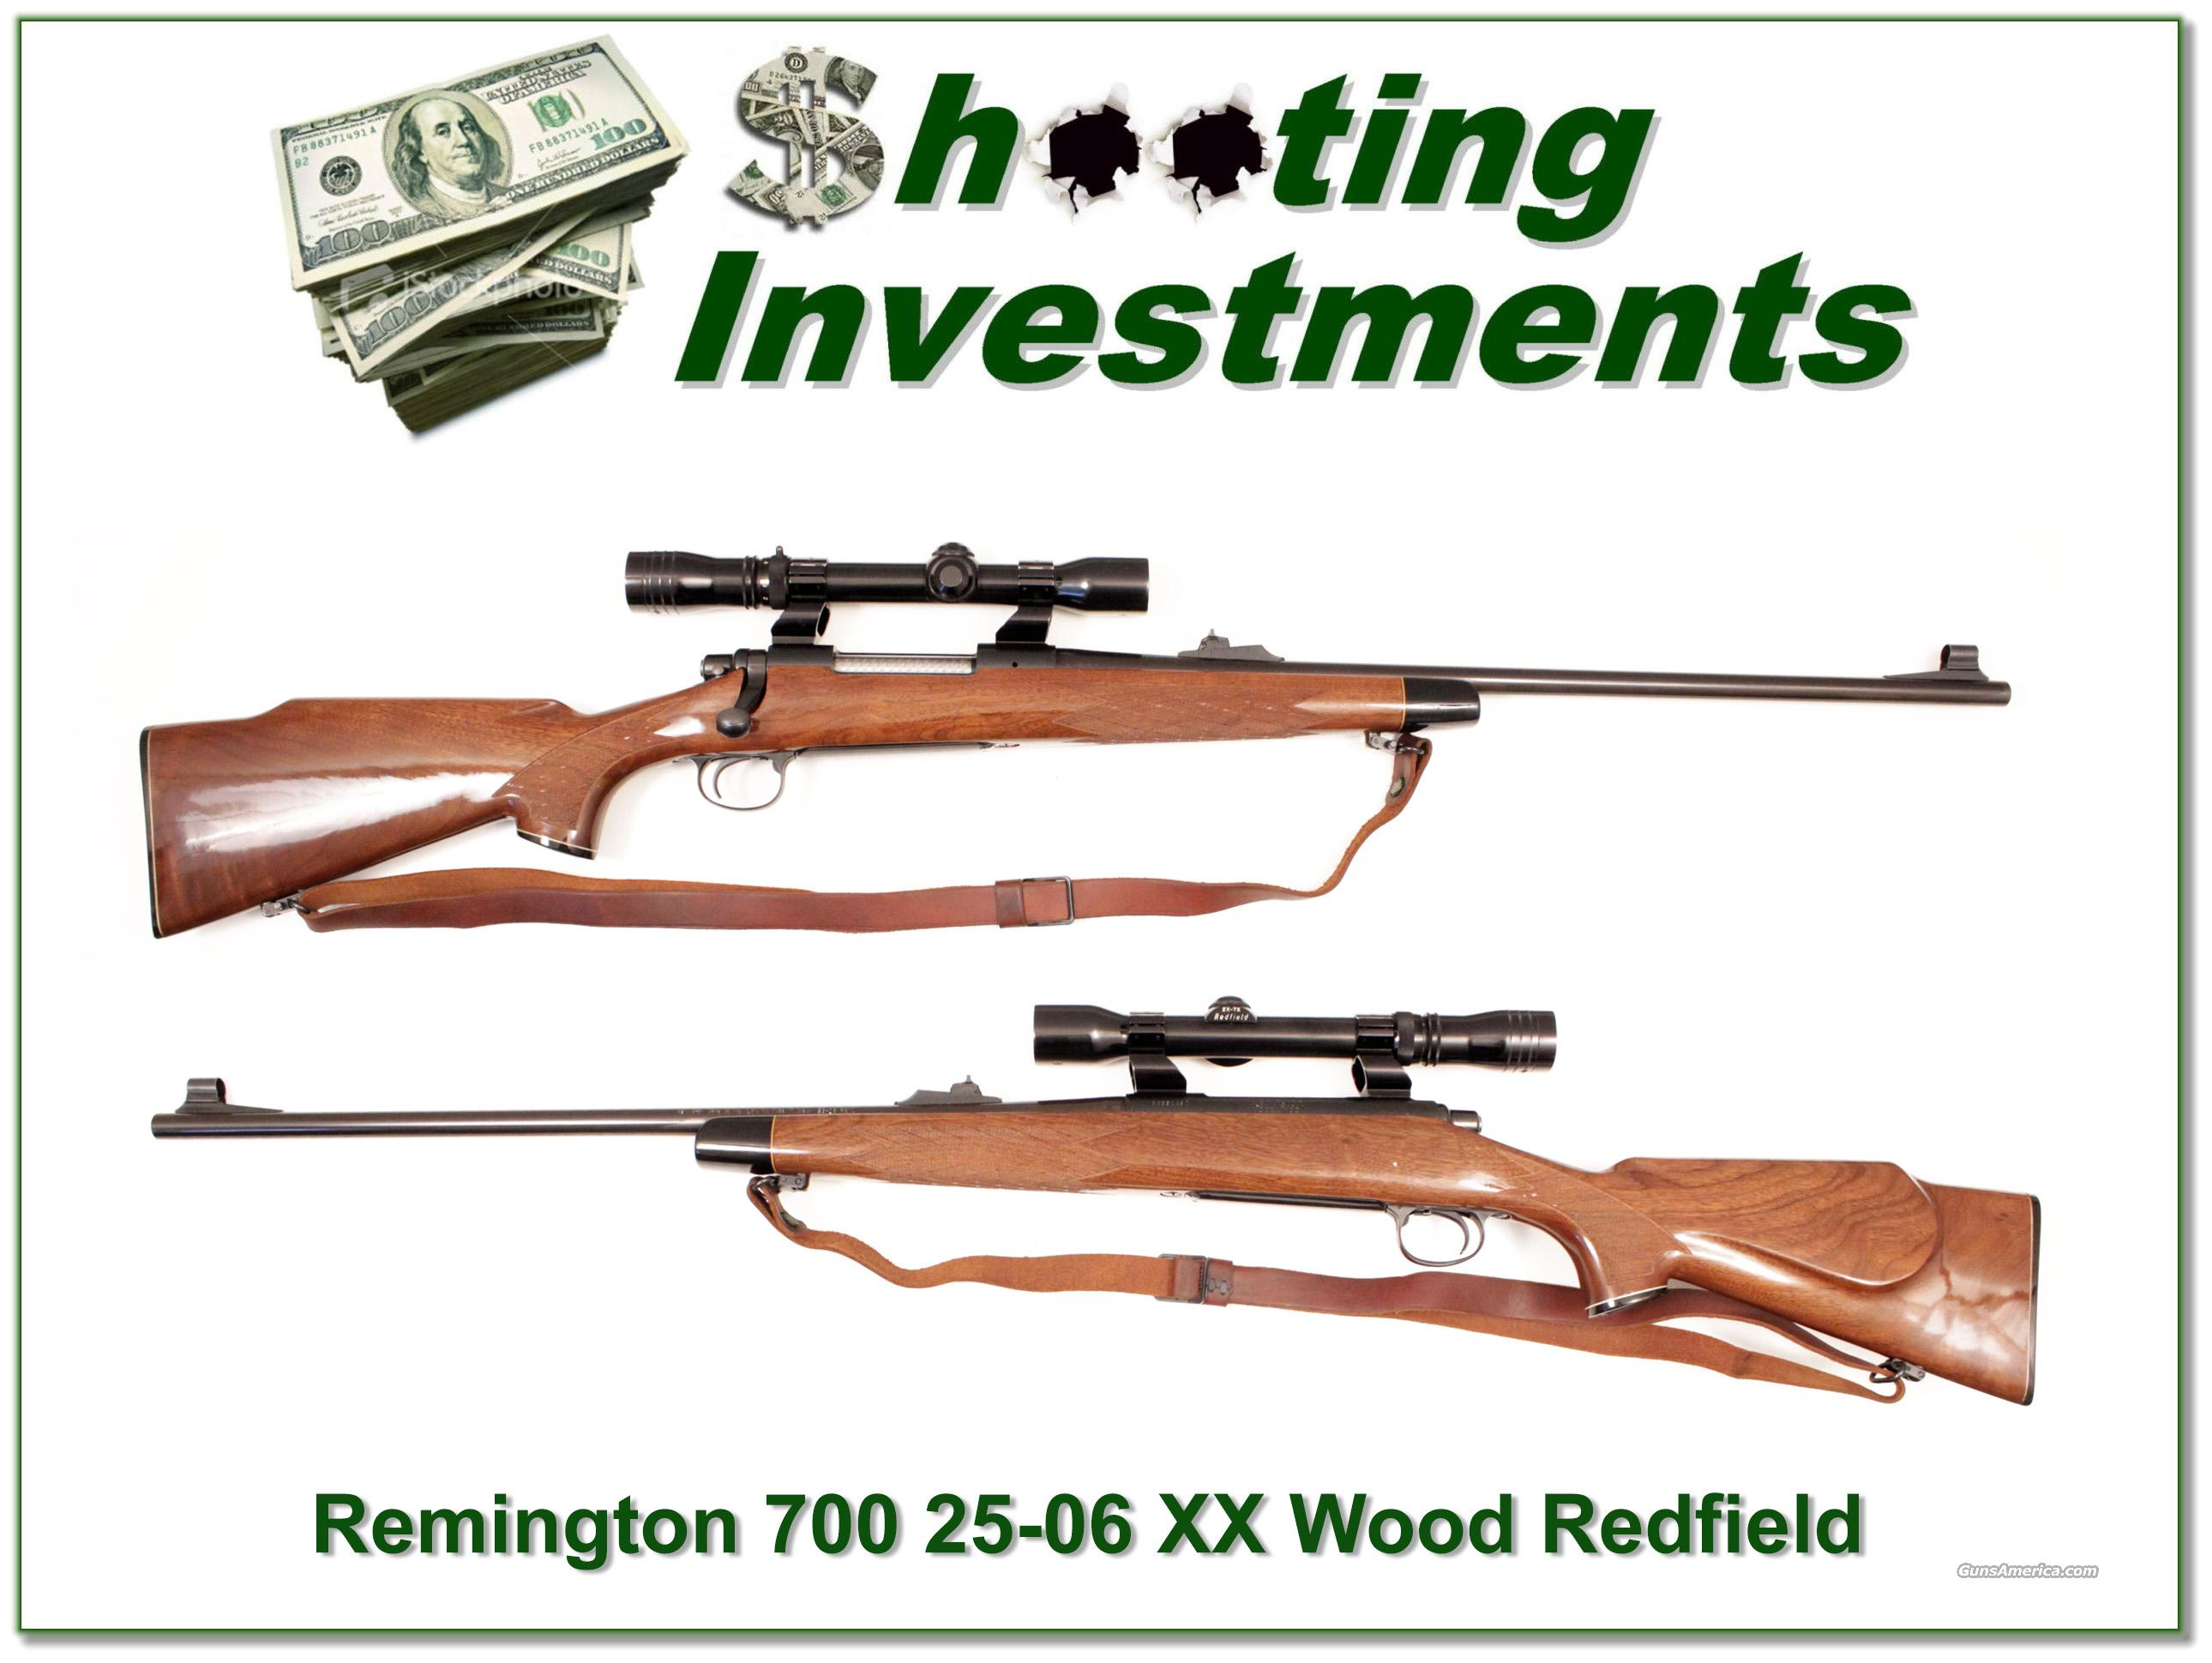 Remington 700 vintage 25-06 XX Wood Redfield as new!  Guns > Rifles > Remington Rifles - Modern > Model 700 > Sporting